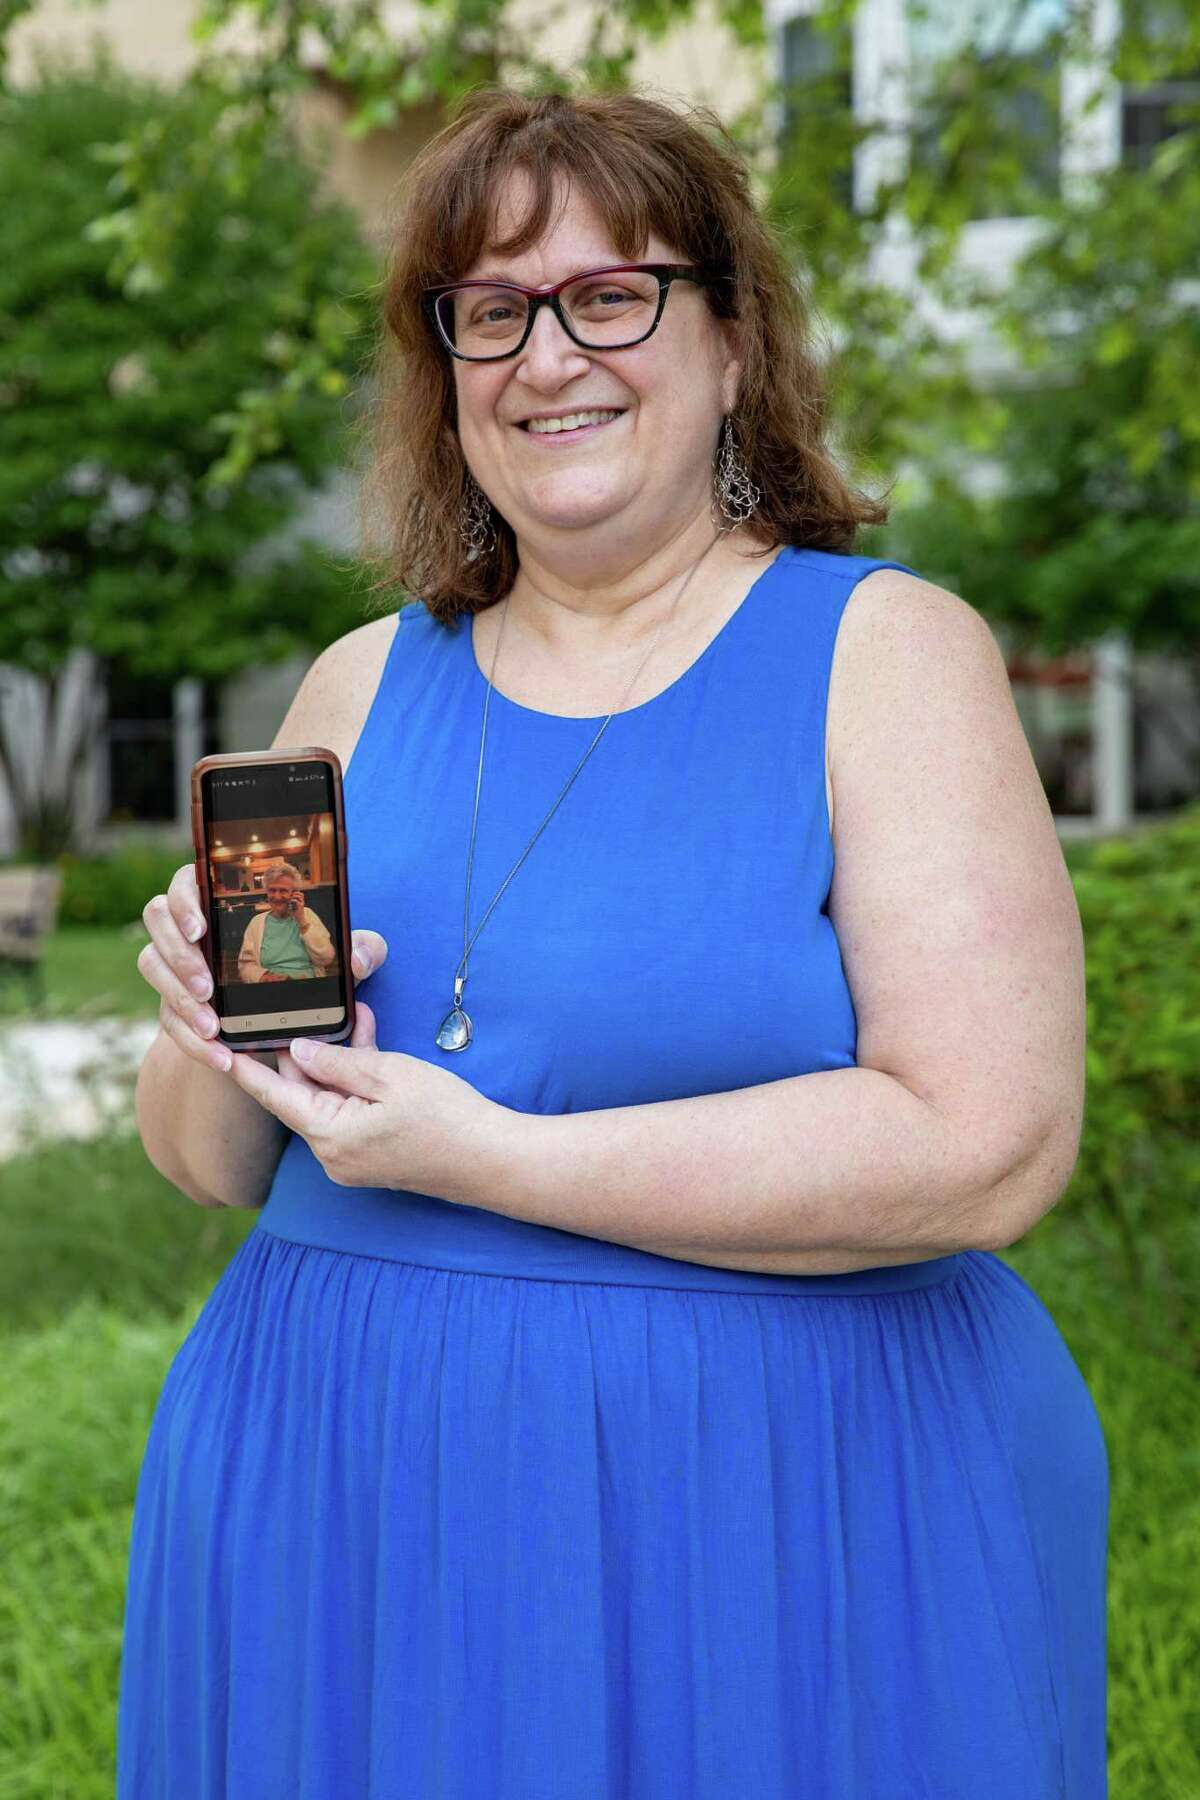 Michele Rubinstein holds up a photo of her mother Helen Rubinstein who lives in Ingleside at King Farm in Rockville, Md.